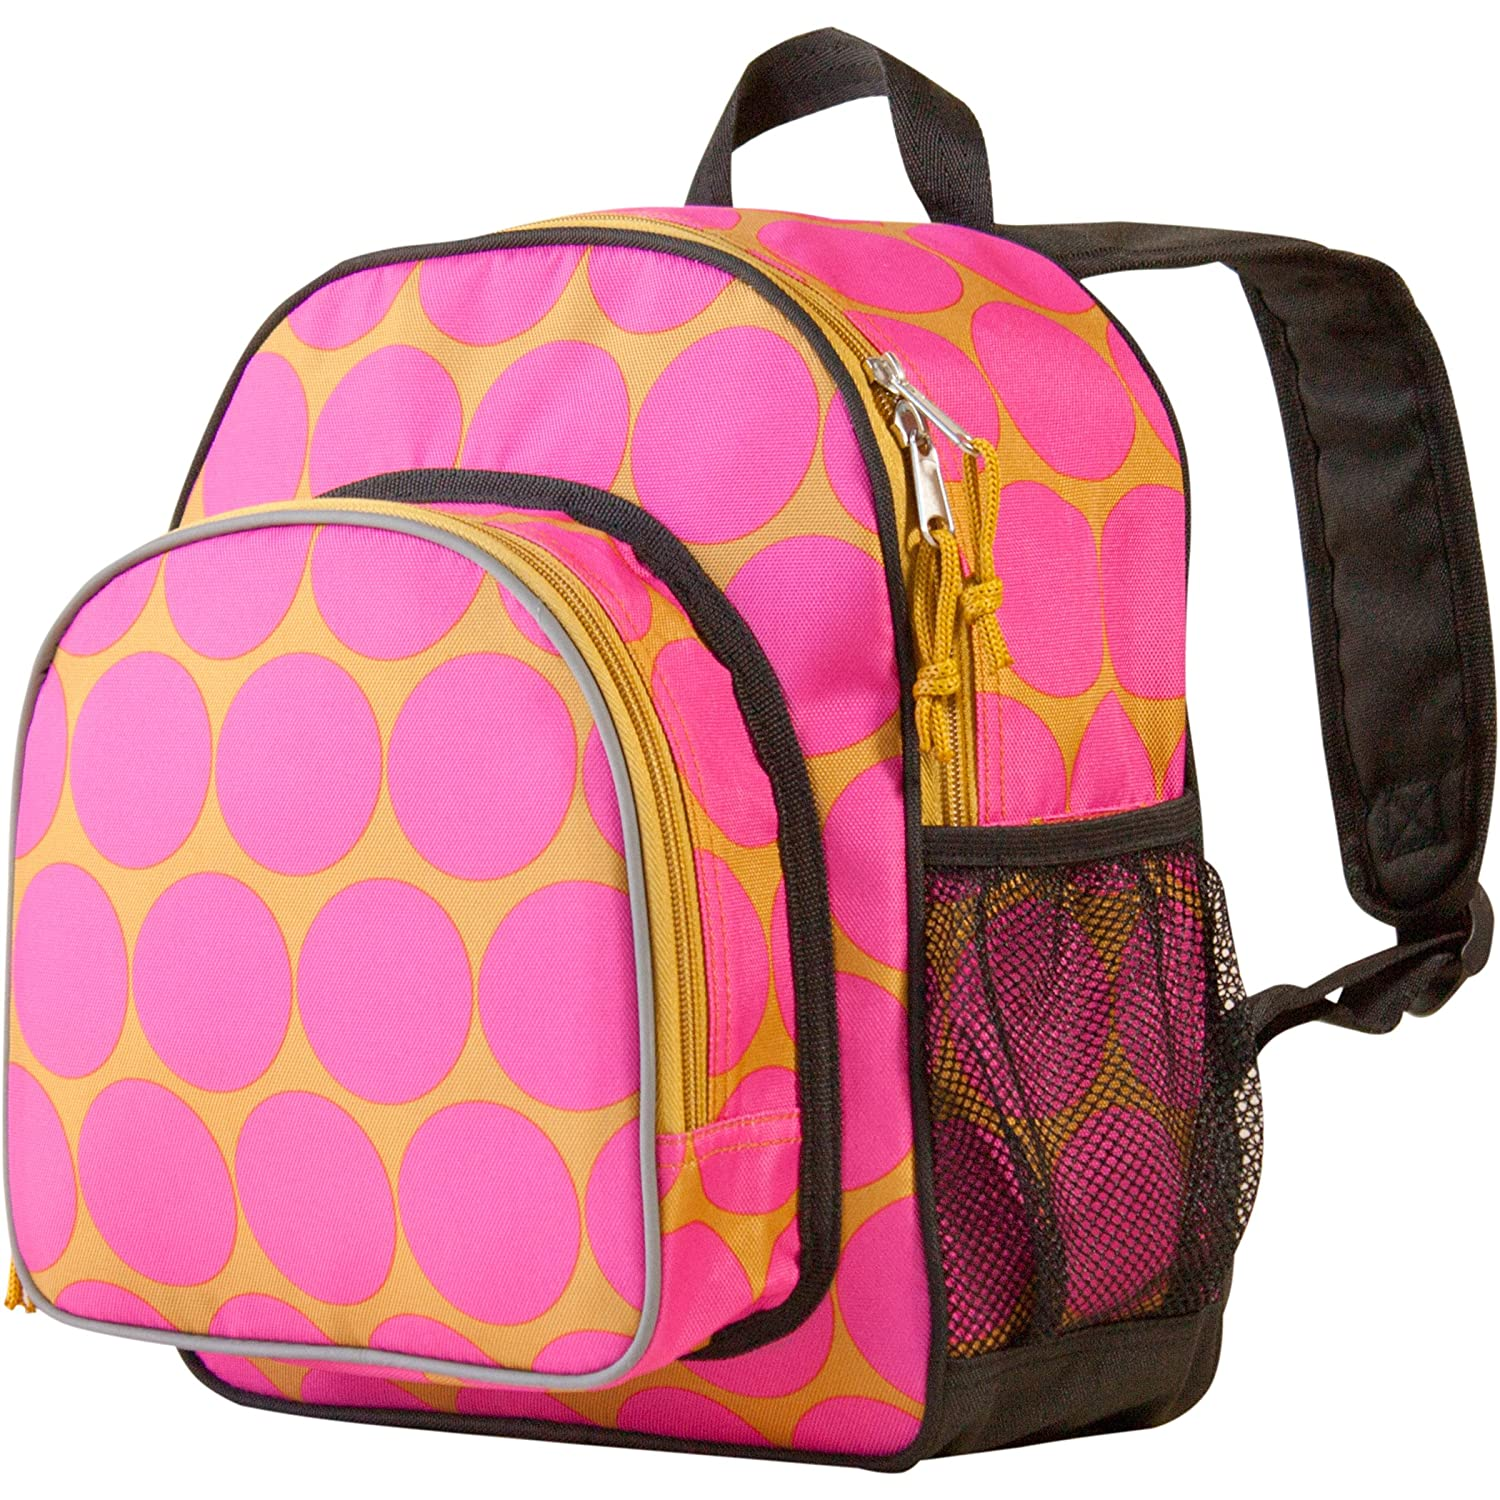 Wildkin Toddler Pack 'n Snack Backpack Pink Dots